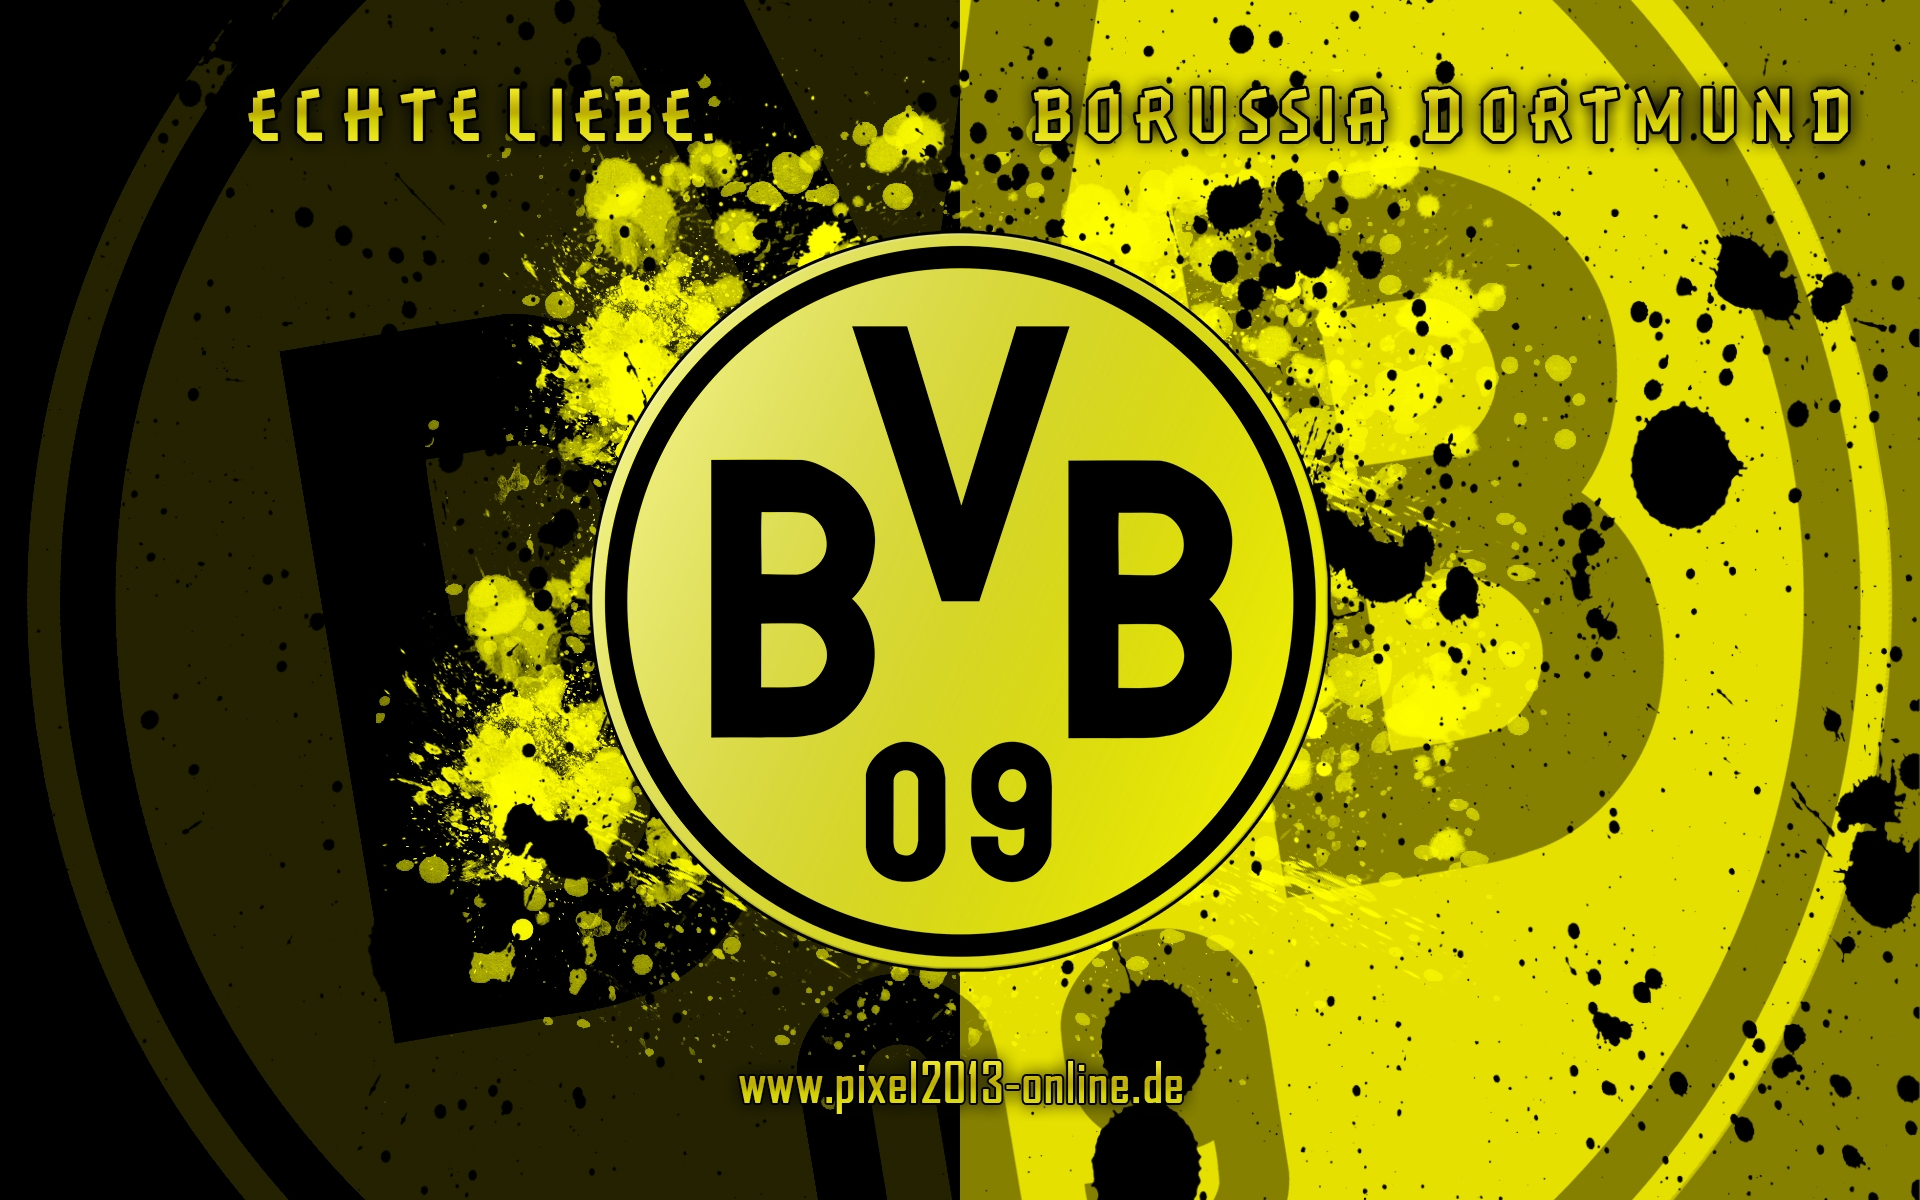 1920x1200 > Borussia Dortmund Wallpapers